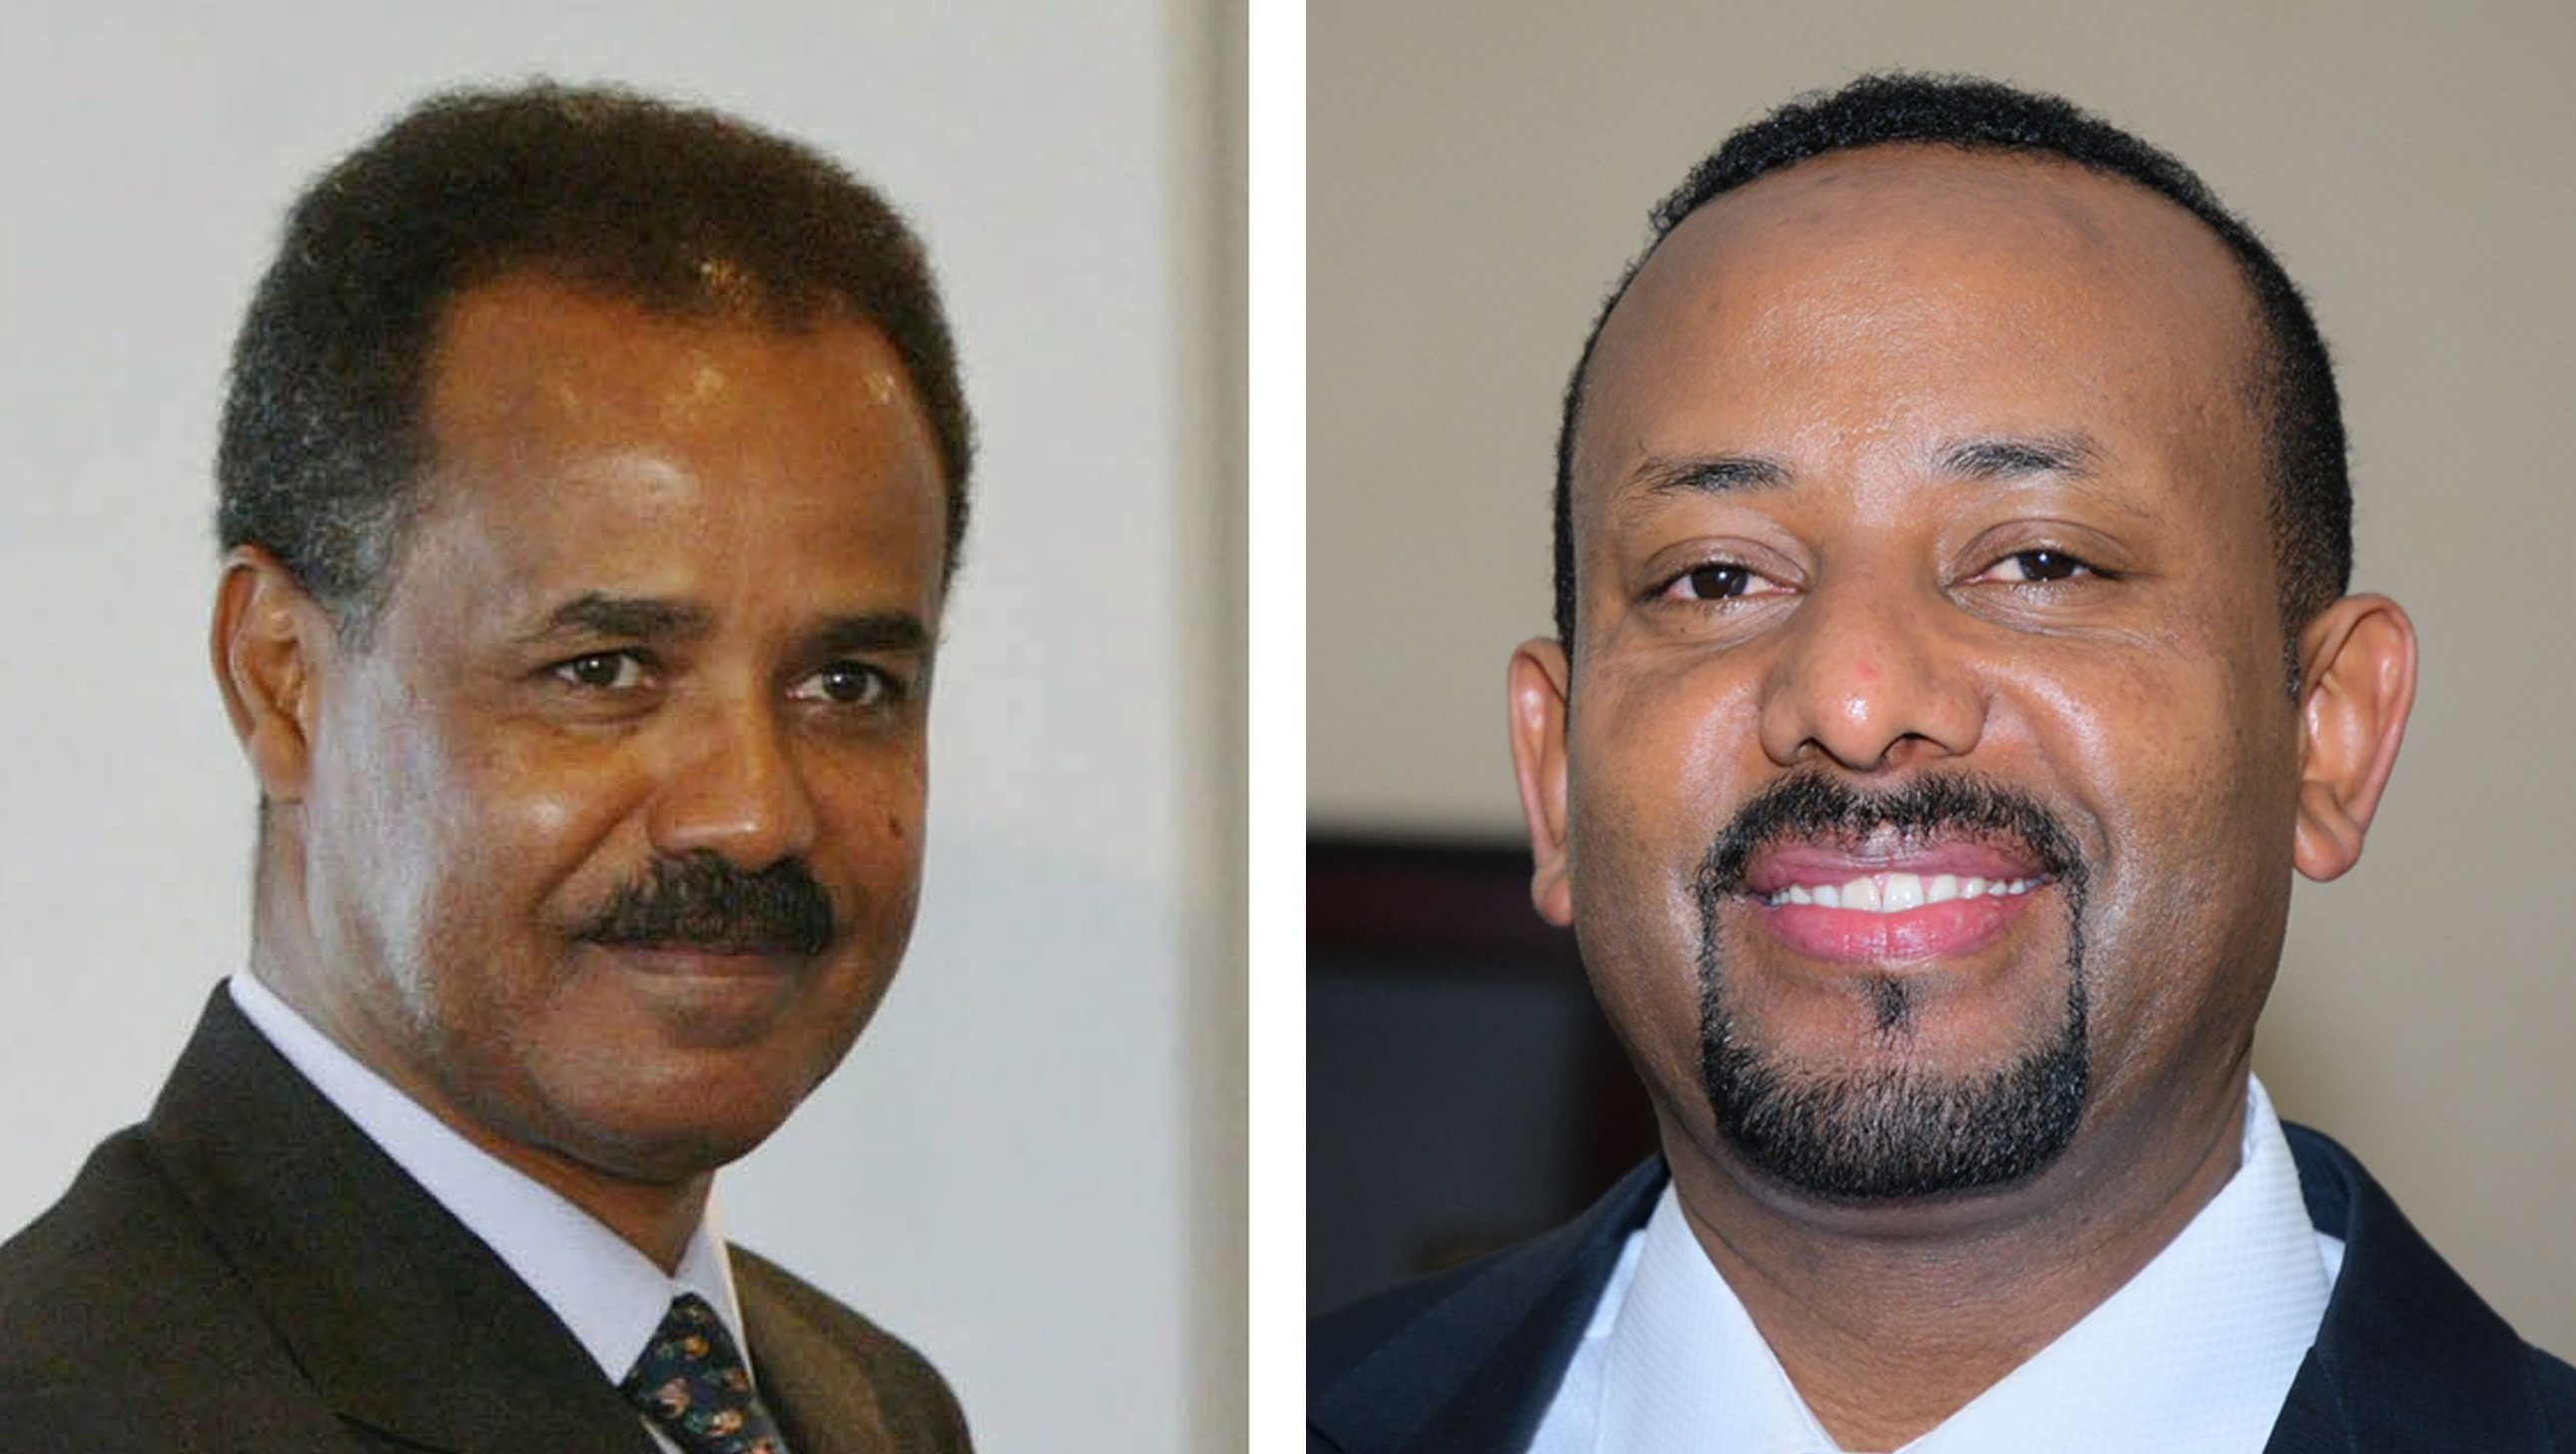 A composite file image showing  Ethiopia's Prime Minister Abiy Ahmed (R) in Addis Ababa, Ethiopia, 02 April 2017, and Isaias Afwerki (L), President of Eritrea in Tokyo, Japan, 28 September 2003 (re-issued 08 July 2018). Media reports on 08 July 2018 state Abiy Ahmed and Isaias Afwerki have met in Asmara, Ethiopia for peace talks. It is the first time leaders of the two nations met for talks in some 20 years. The two nations waged a war against each other from May 1998 to June 2000, with an estimated 80,000 people dying.